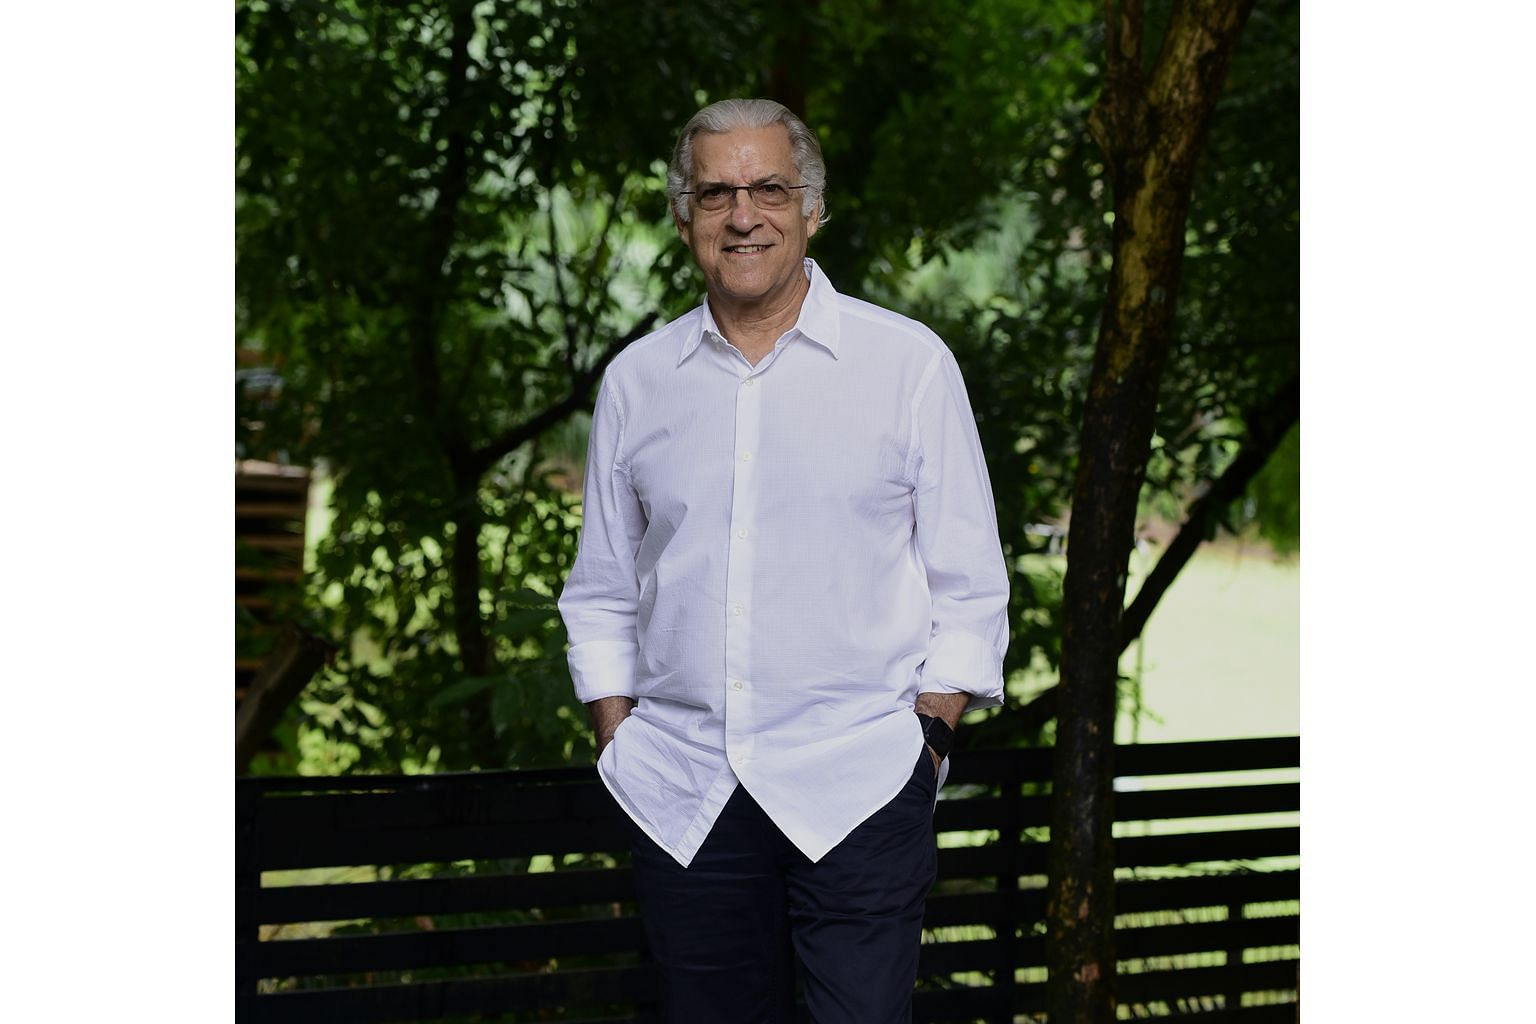 American Mark Edleson was the president of Alila from 2001 to last year and is now an adviser to the brand.